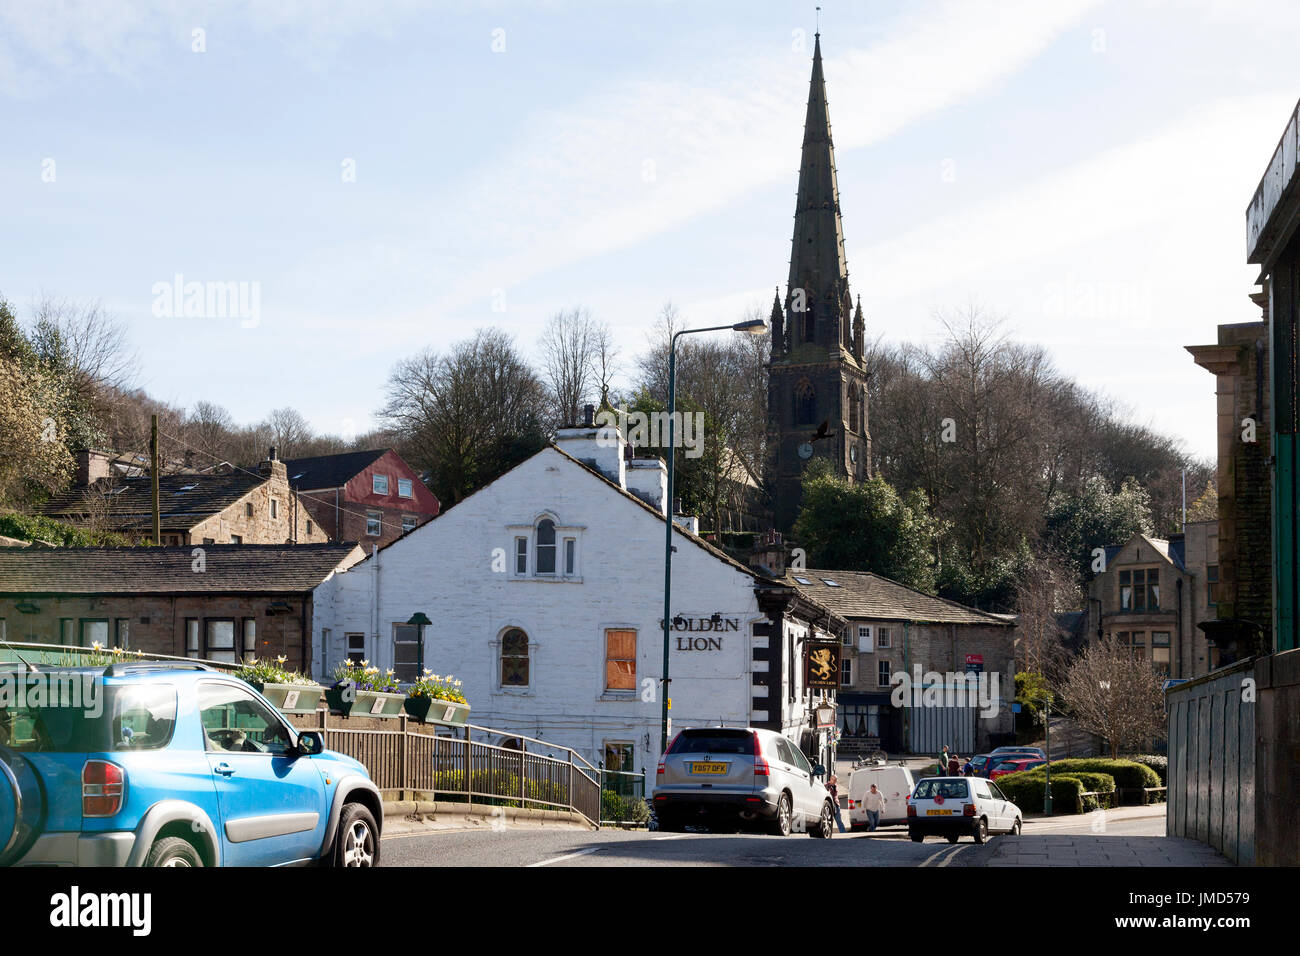 Rochdale Road and the Golden Lion, Todmorden, West Yorkshire - Stock Image